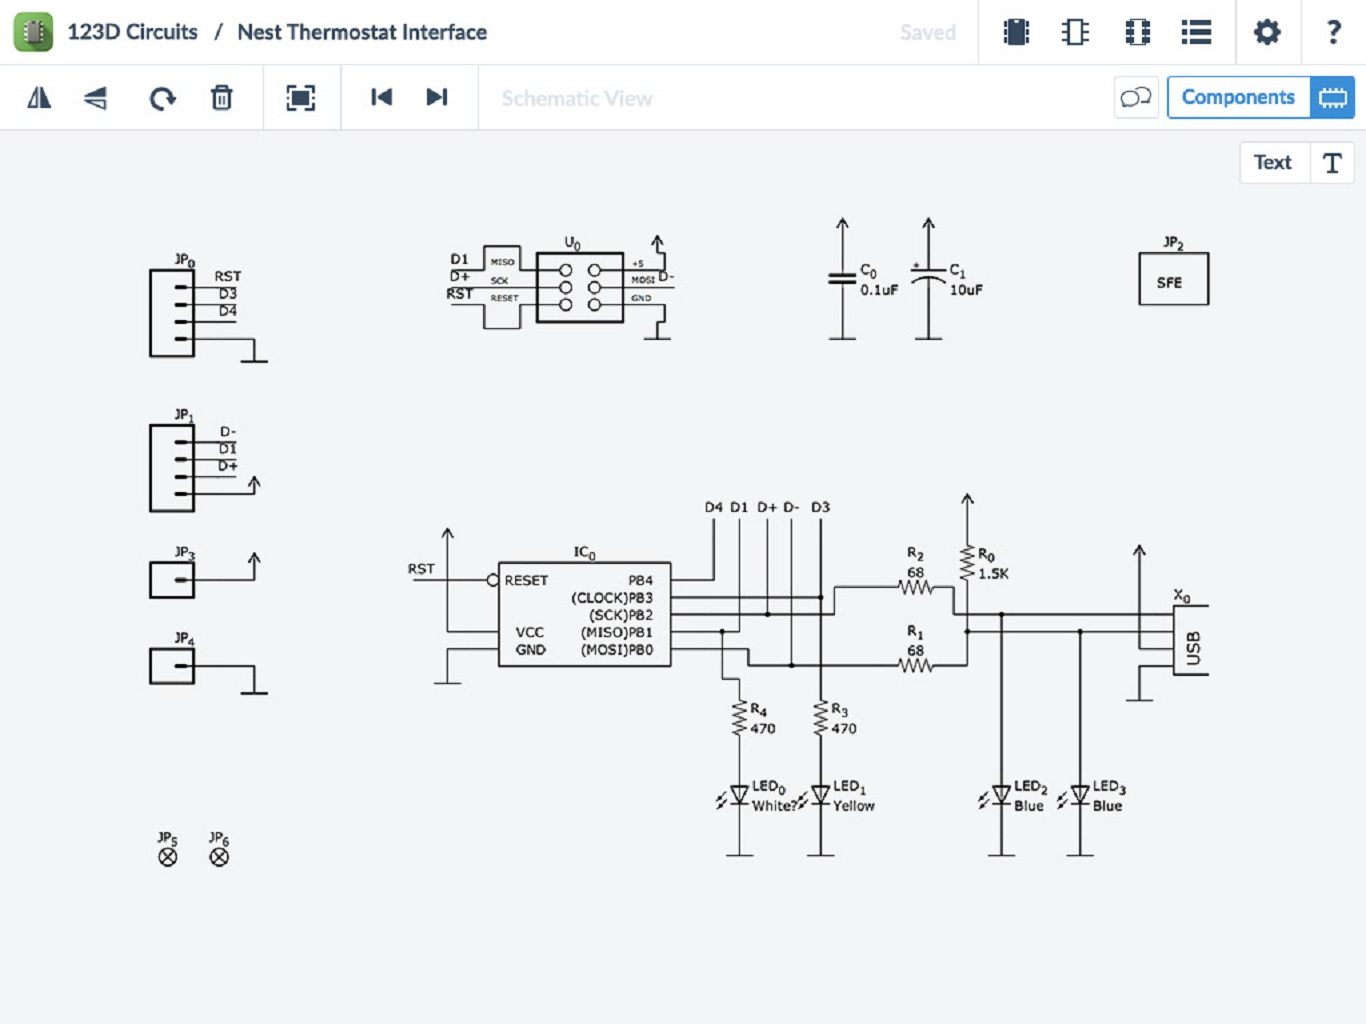 autodesk u00ae 123d u00ae circuits for windows 10